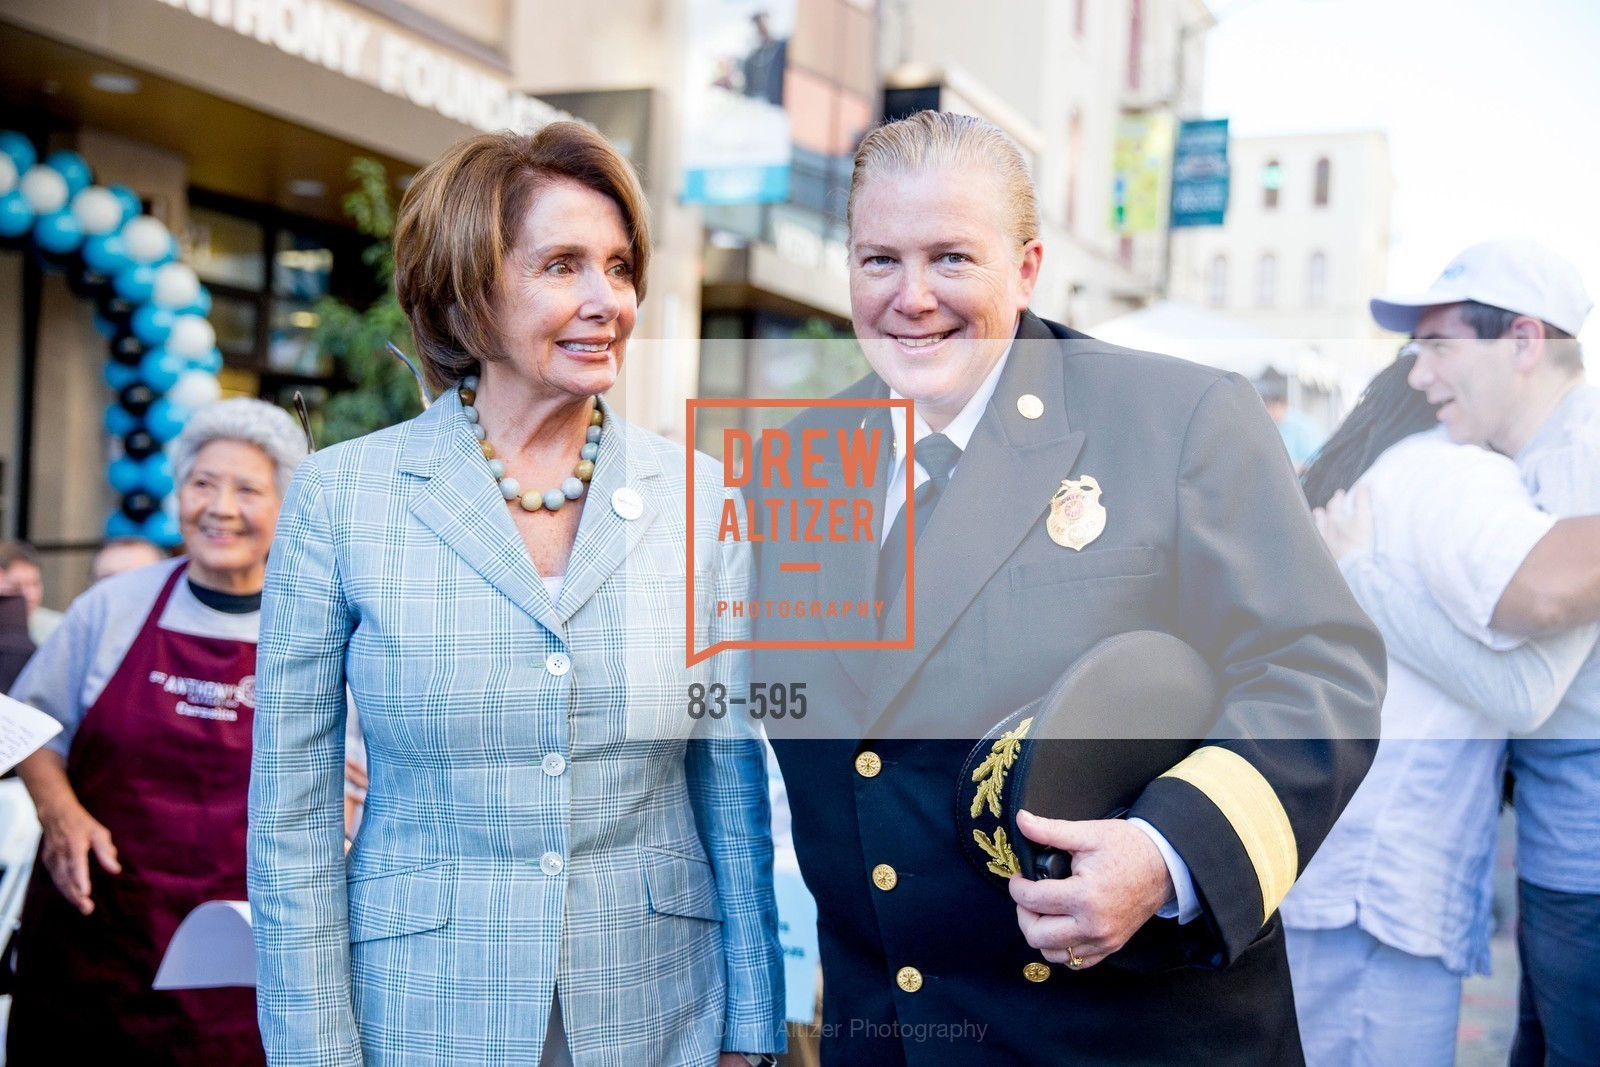 Nancy Pelosi, Joanne Hayes-White, ST. ANTHONY'S Dining Room Ribbon Cutting Ceremony, US, October 5th, 2014,Drew Altizer, Drew Altizer Photography, full-service event agency, private events, San Francisco photographer, photographer California